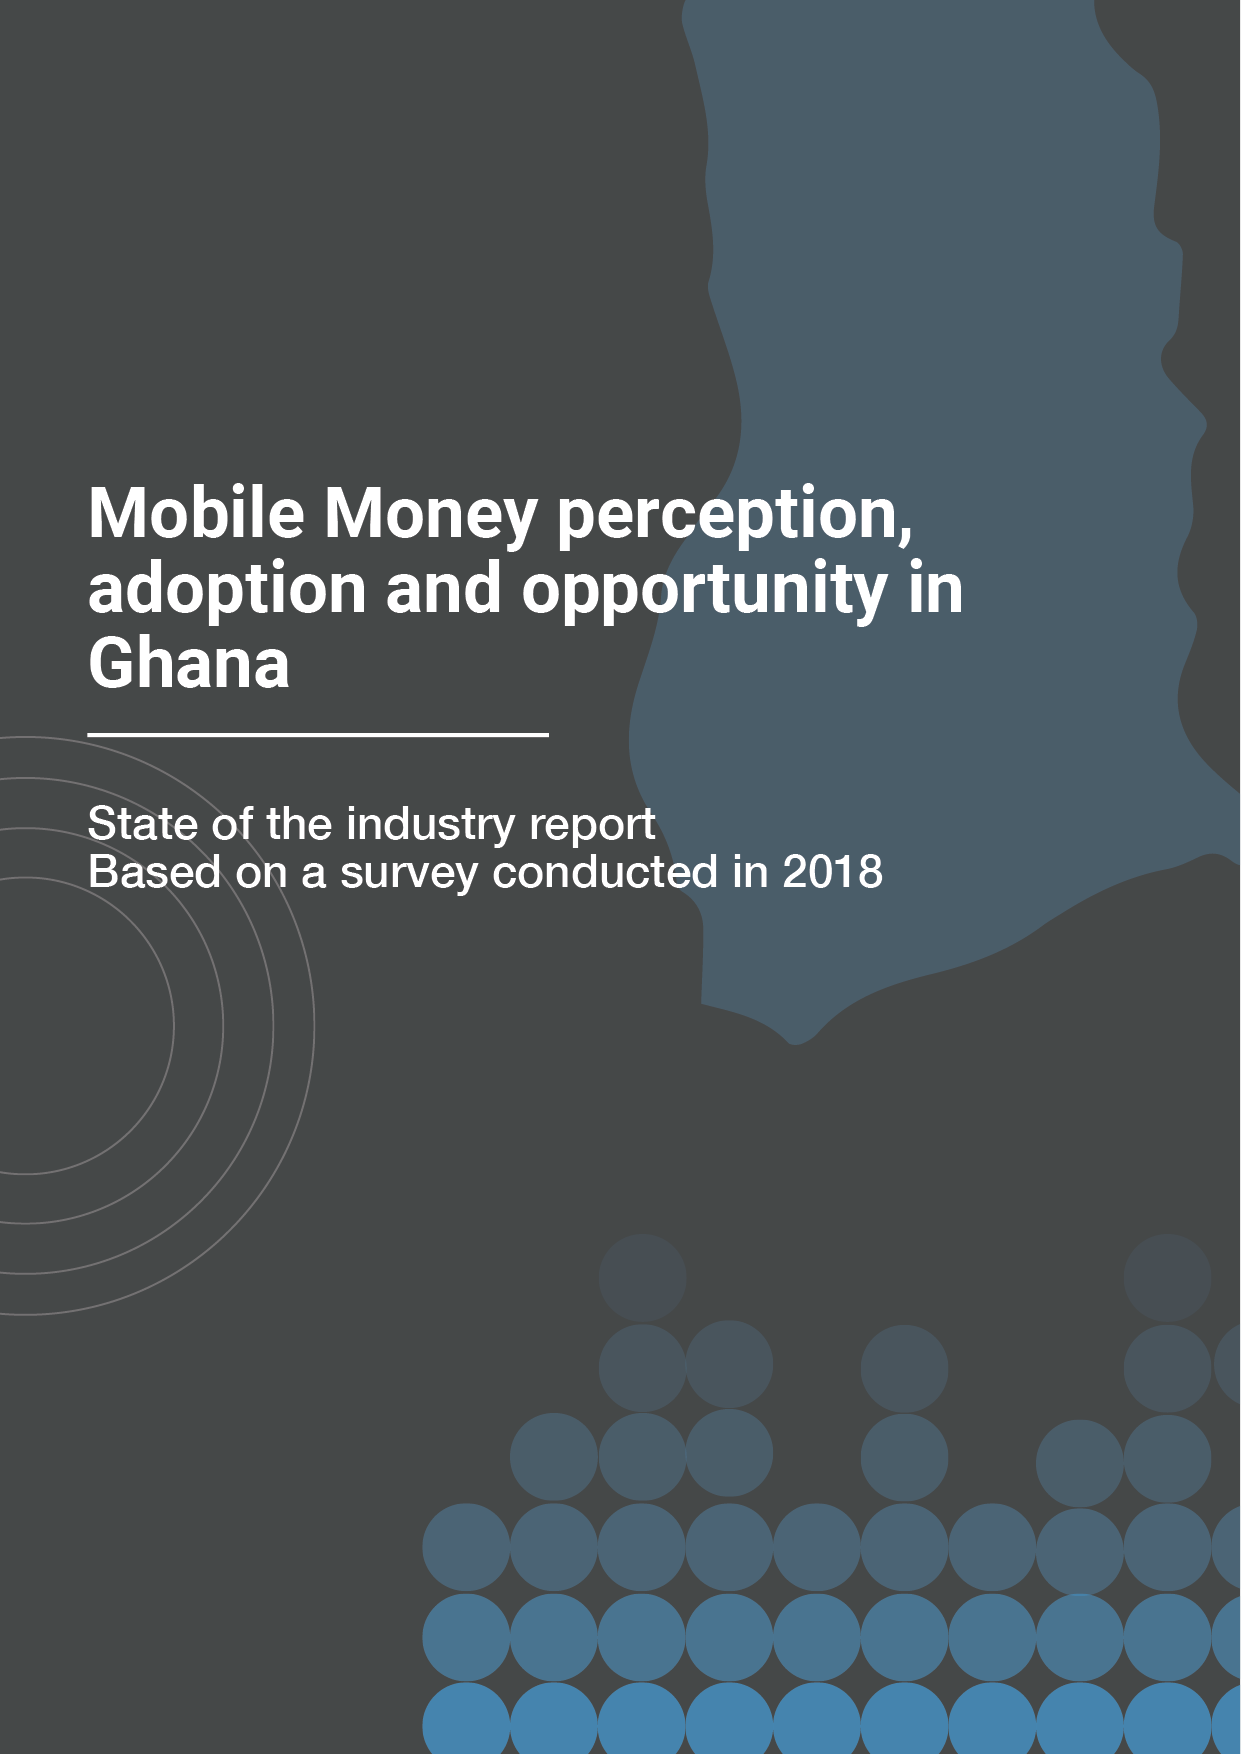 Mobile money and financial inclusion